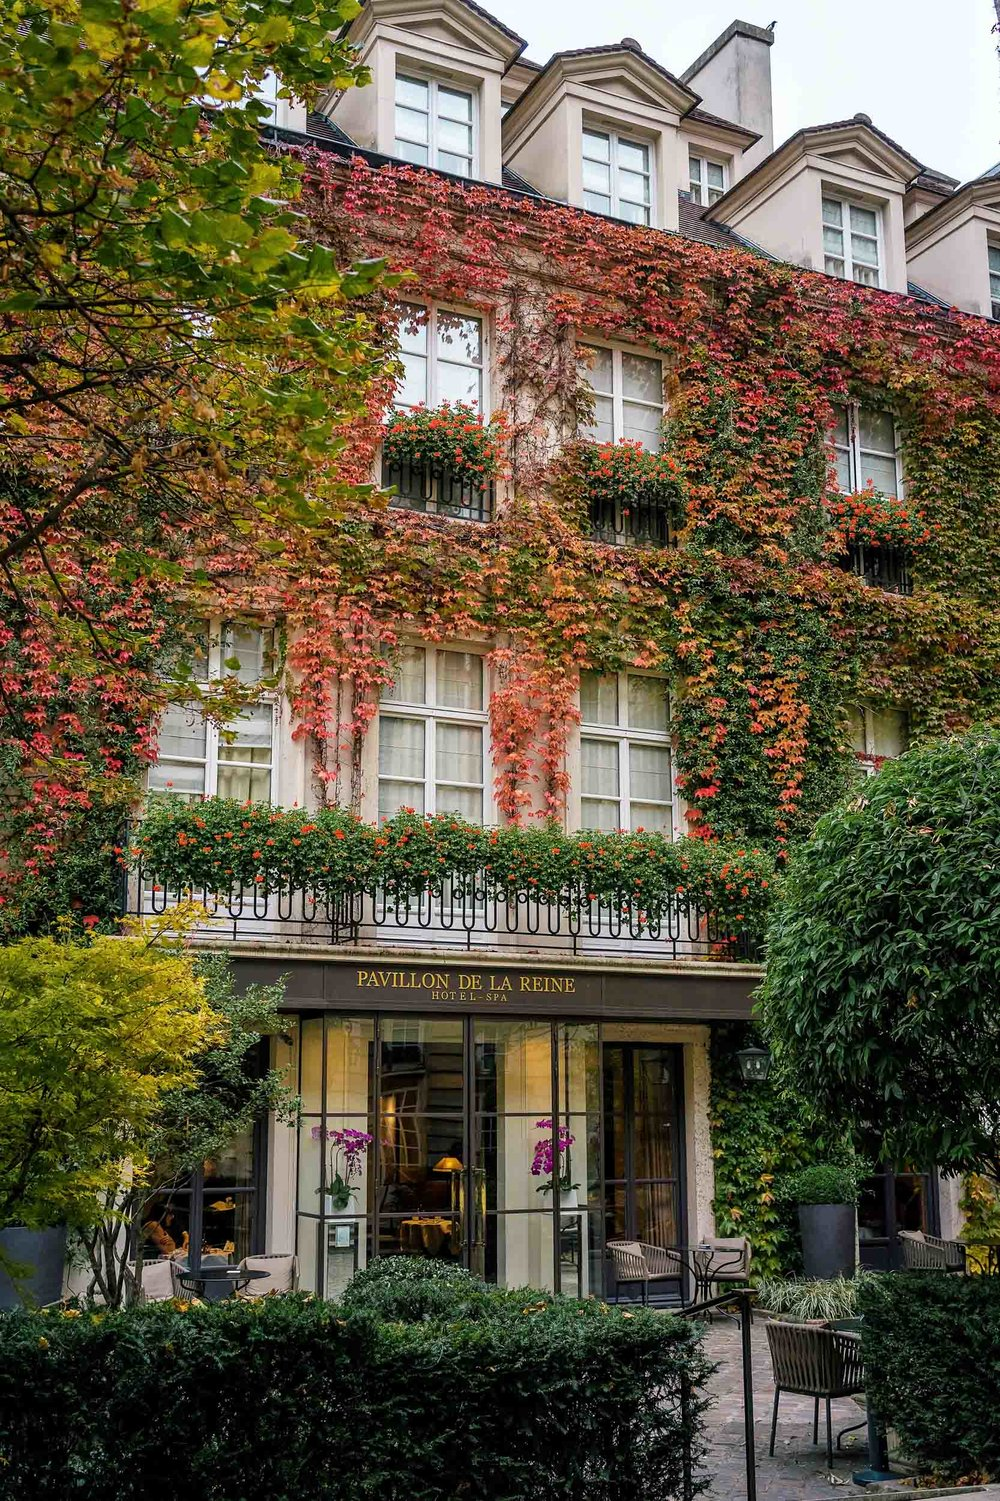 Le Pavillon de la Reine: the best hotel in Paris